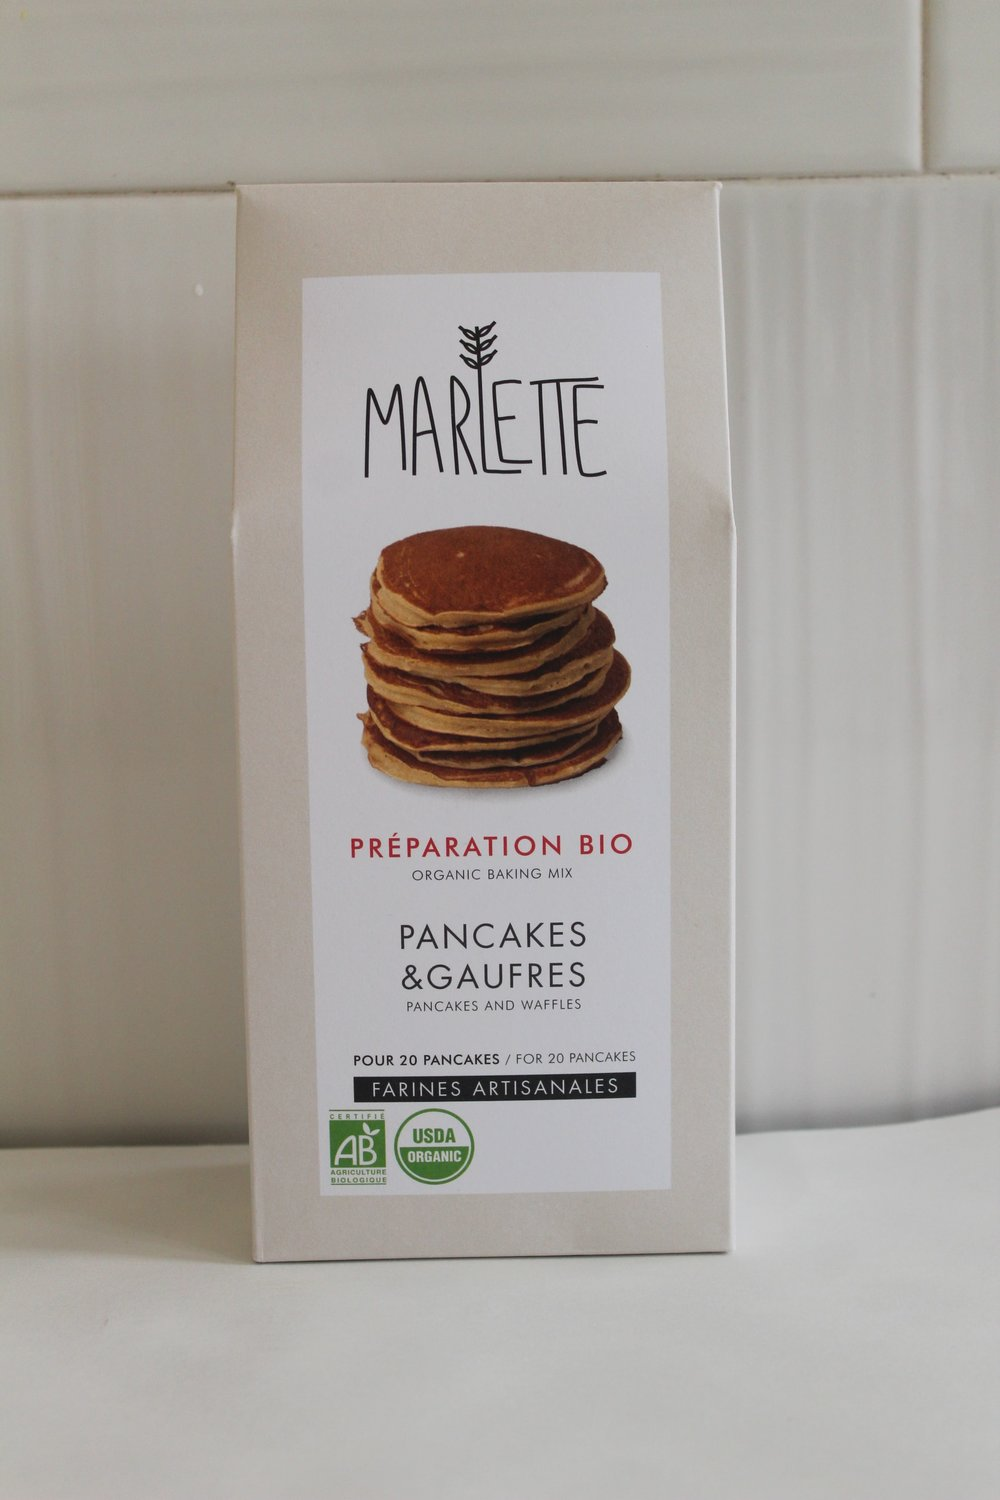 Pancakes Waffles mix  Marlette  - Baking mix for organic pancakes and waffles made with premium ingredients. Just add eggs, butter and milk and enjoy!Serve your pancakes with honey or jam. For energic mornings, add seeds or nuts to the dough and cook your pancakes as indicated on the recipe : it's crispy, full of vitamines, just what you need to boost your day !